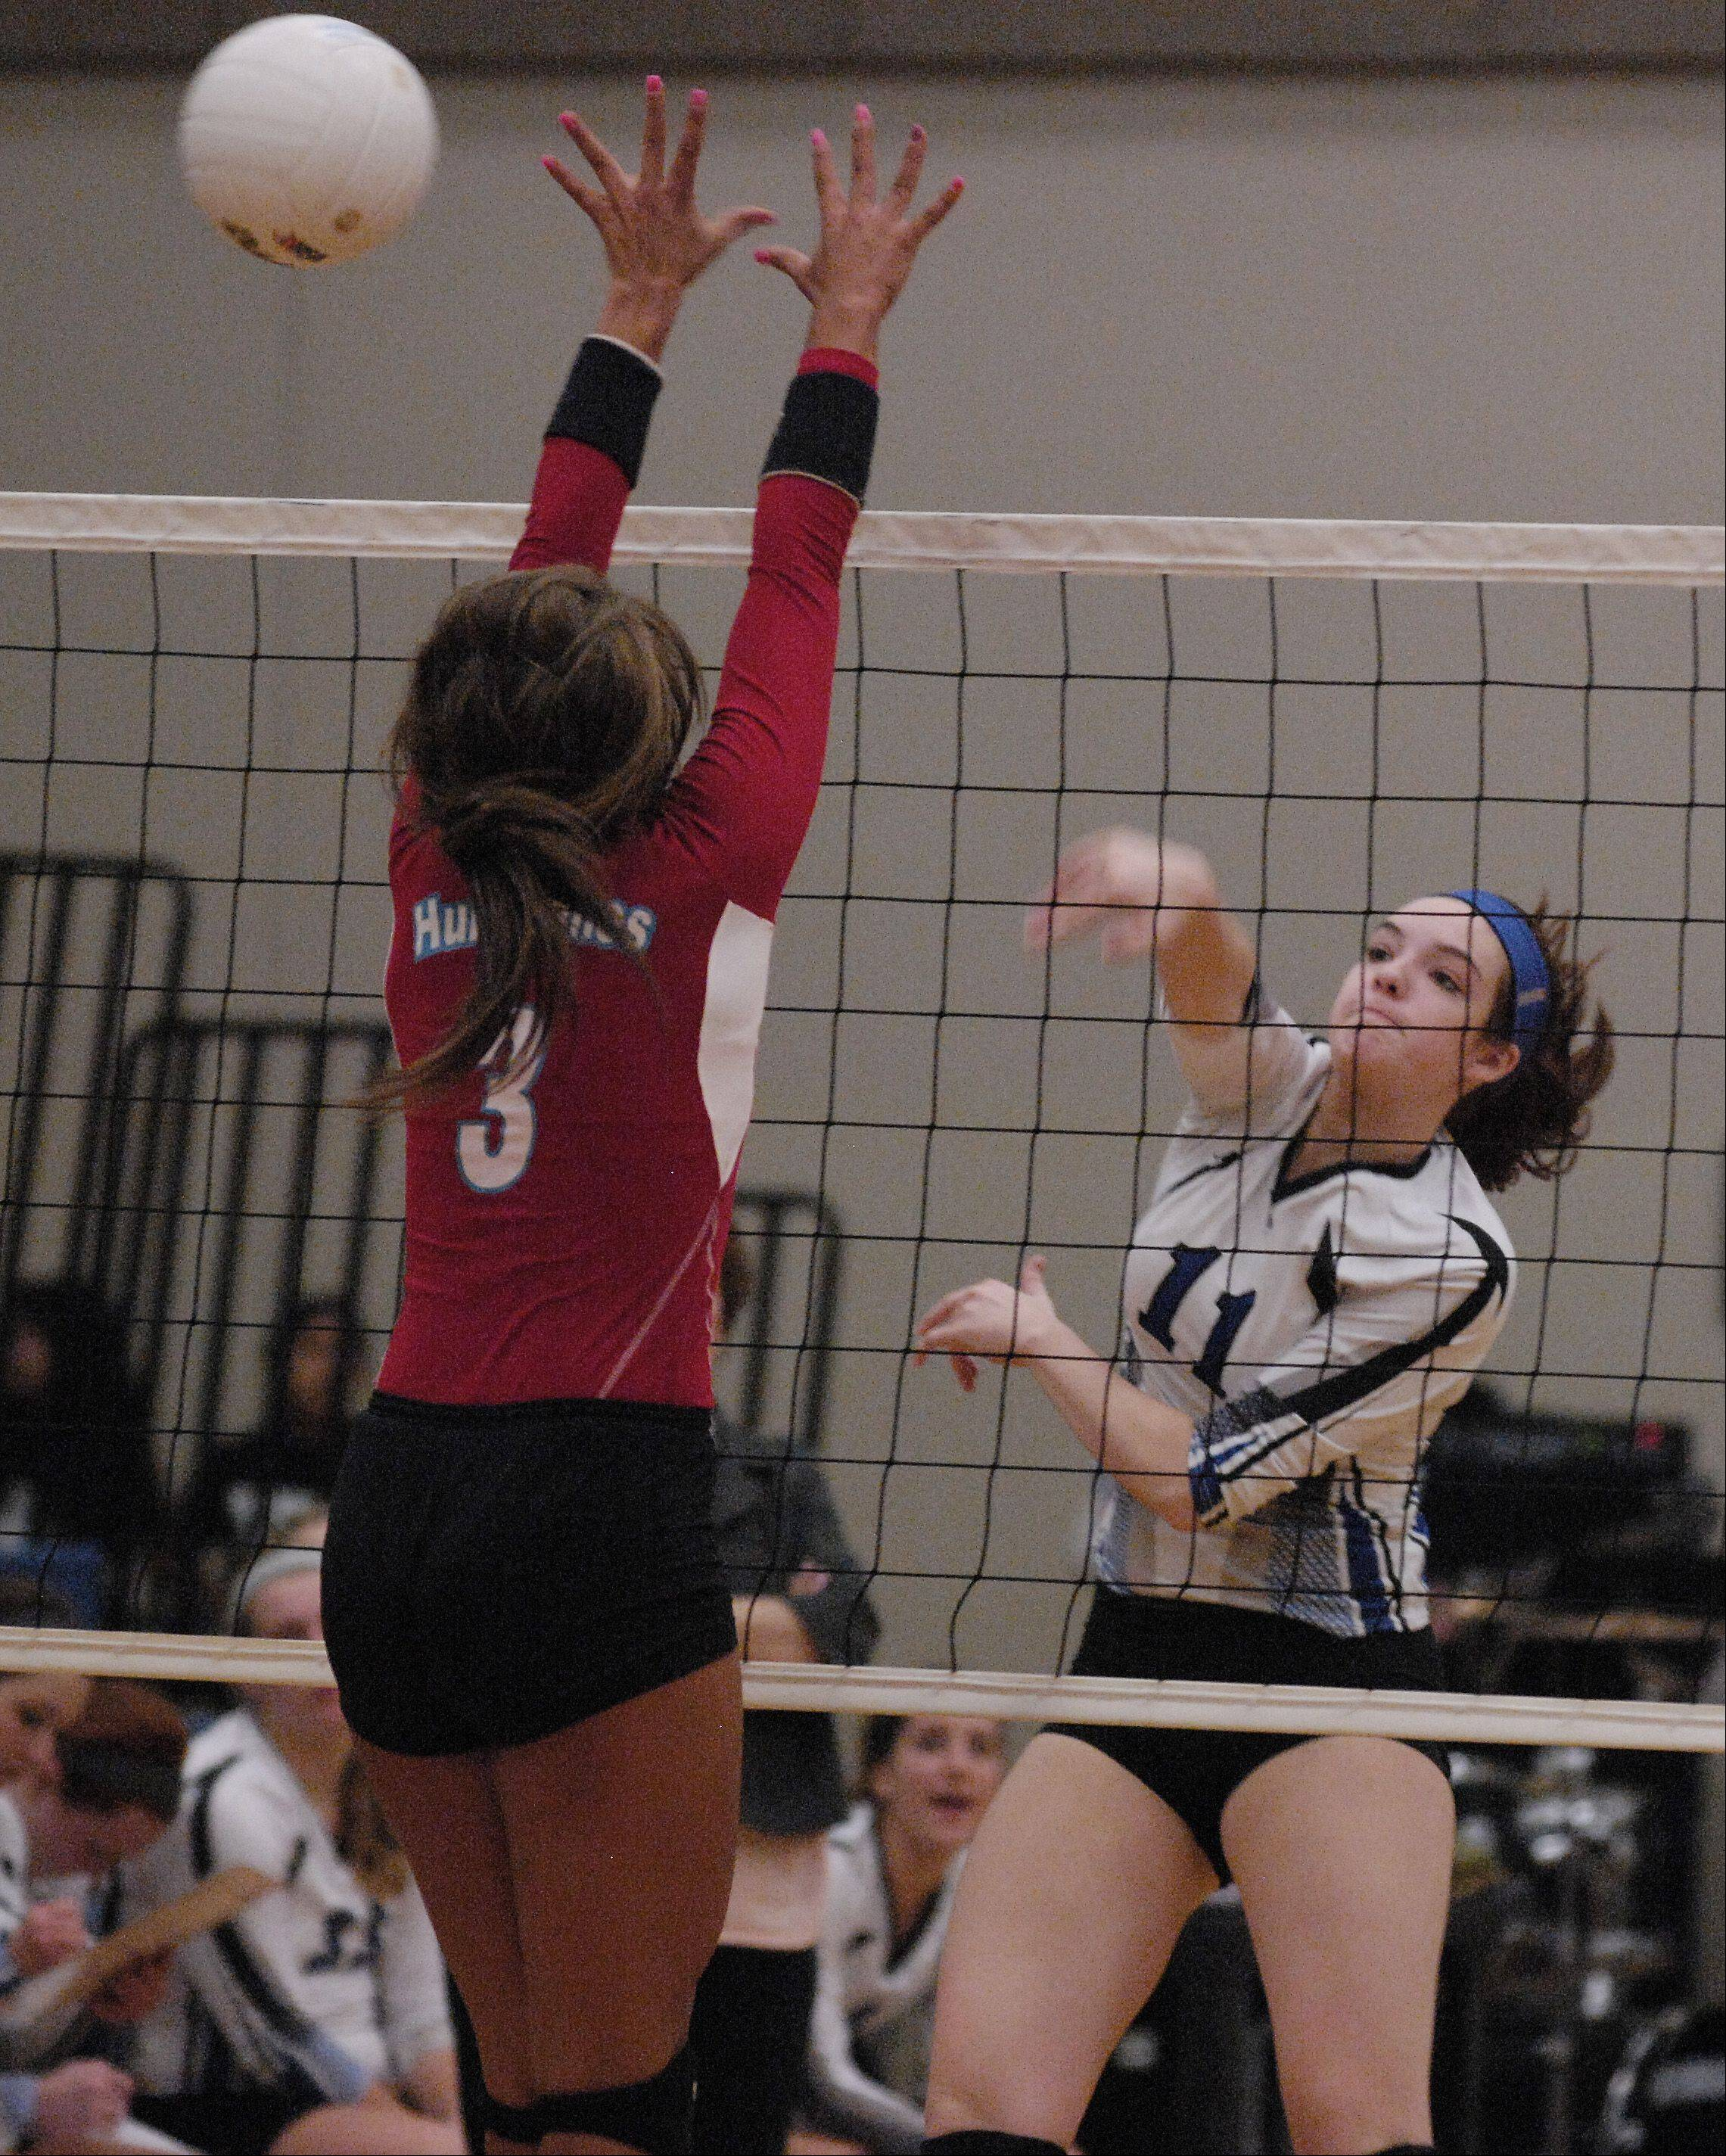 Becca Shearer of St. Francis fires now past Frankie Taylor of Marian Central during girls volleyball action in Wheaton, Wednesday.